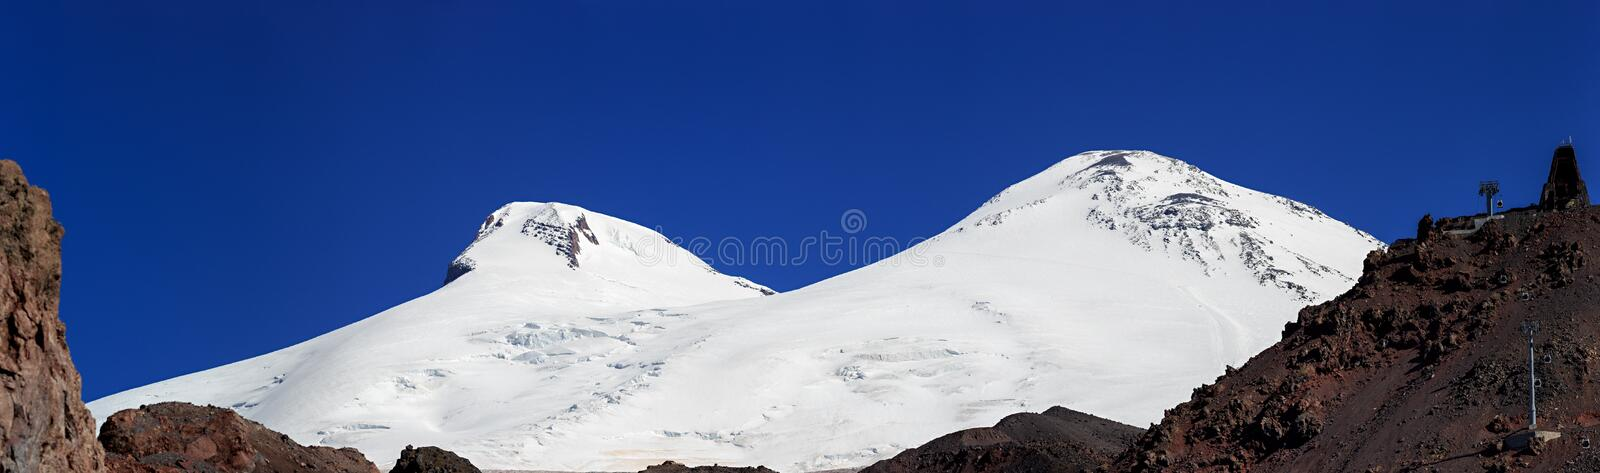 Panoramic view of the southern slope of Mount Elbrus. Of the Caucasus Mountains in Russia. Snow-covered mountain peaks with two peaks stock photo